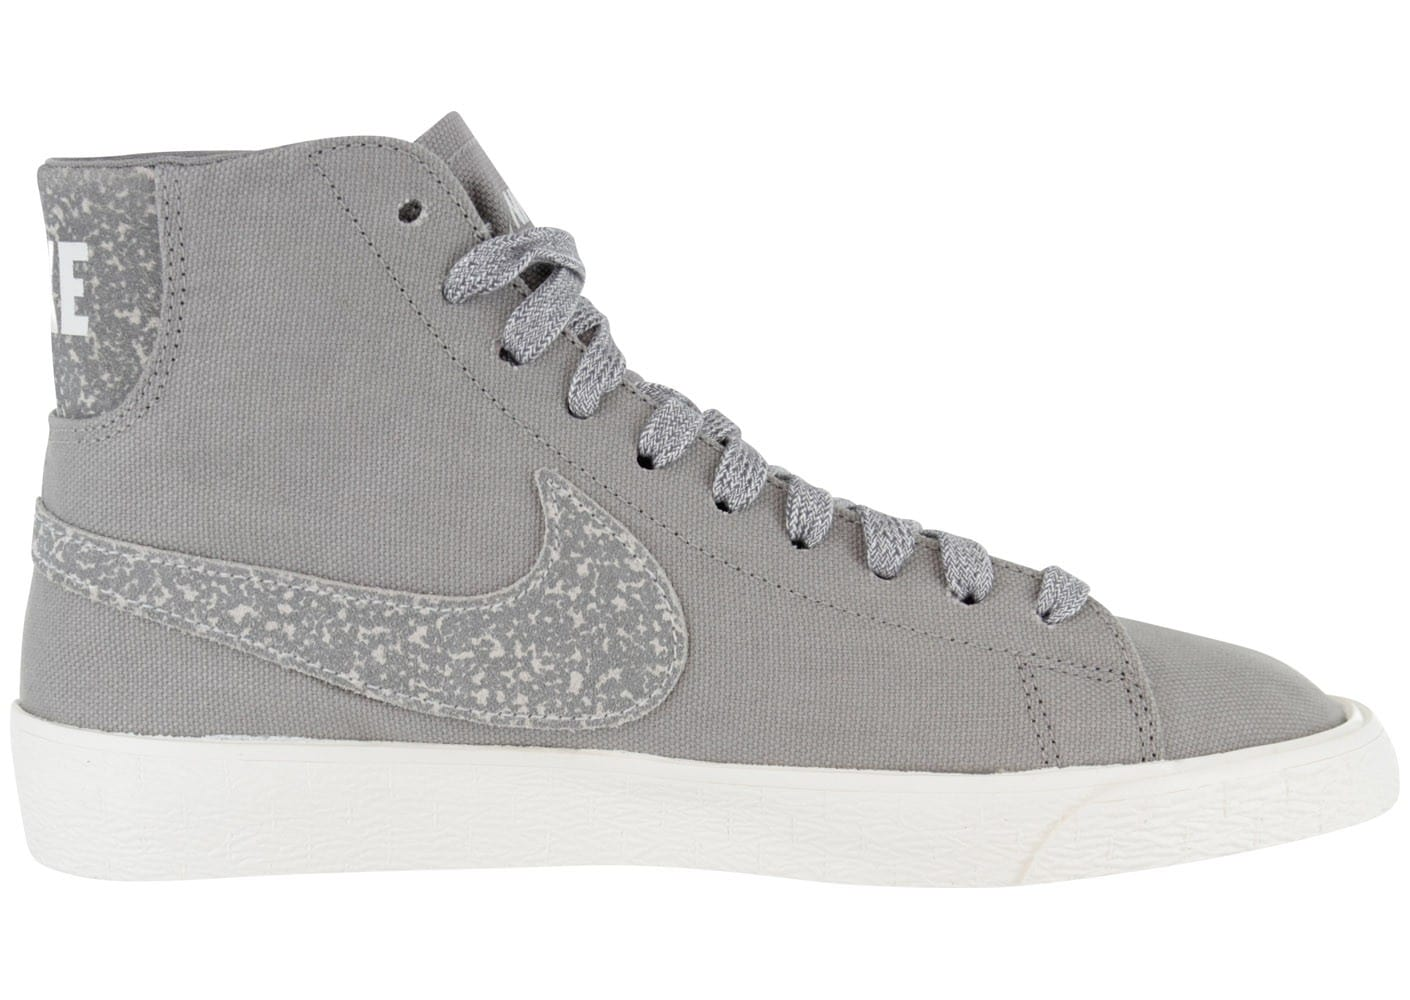 nike blazer toile deconstruct grise chaussures chaussures chausport. Black Bedroom Furniture Sets. Home Design Ideas